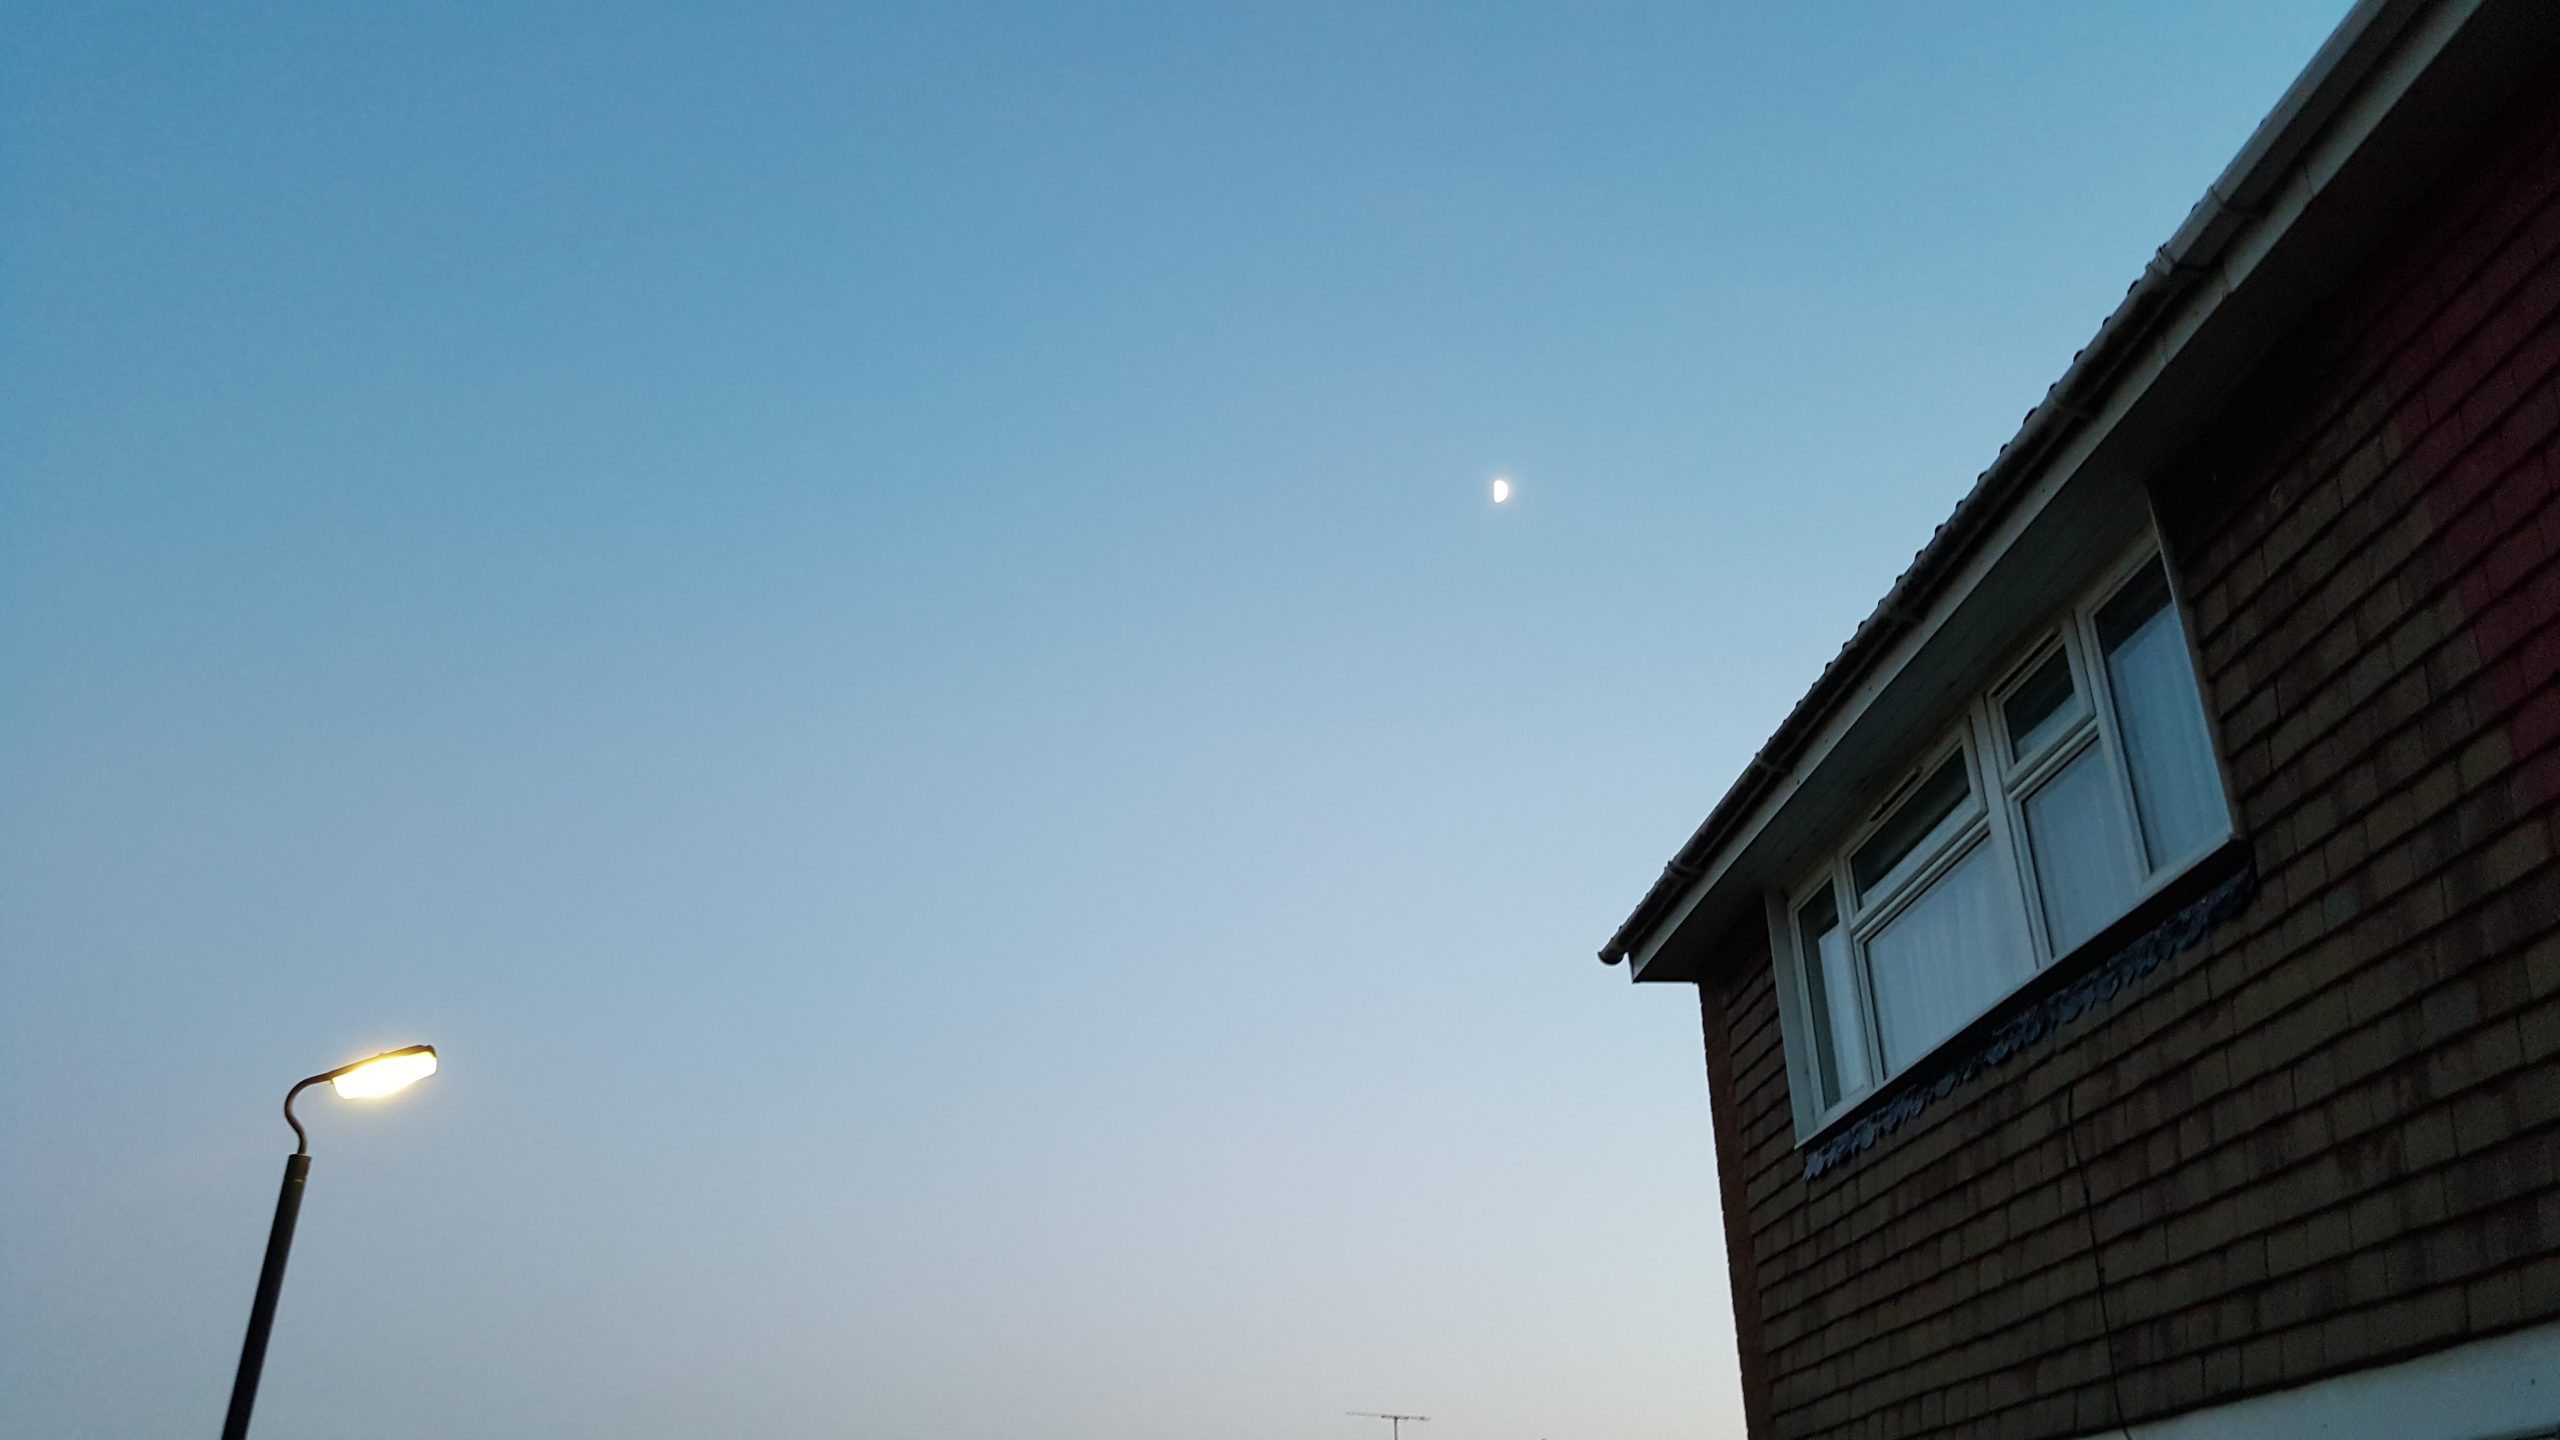 House Moon and lamp